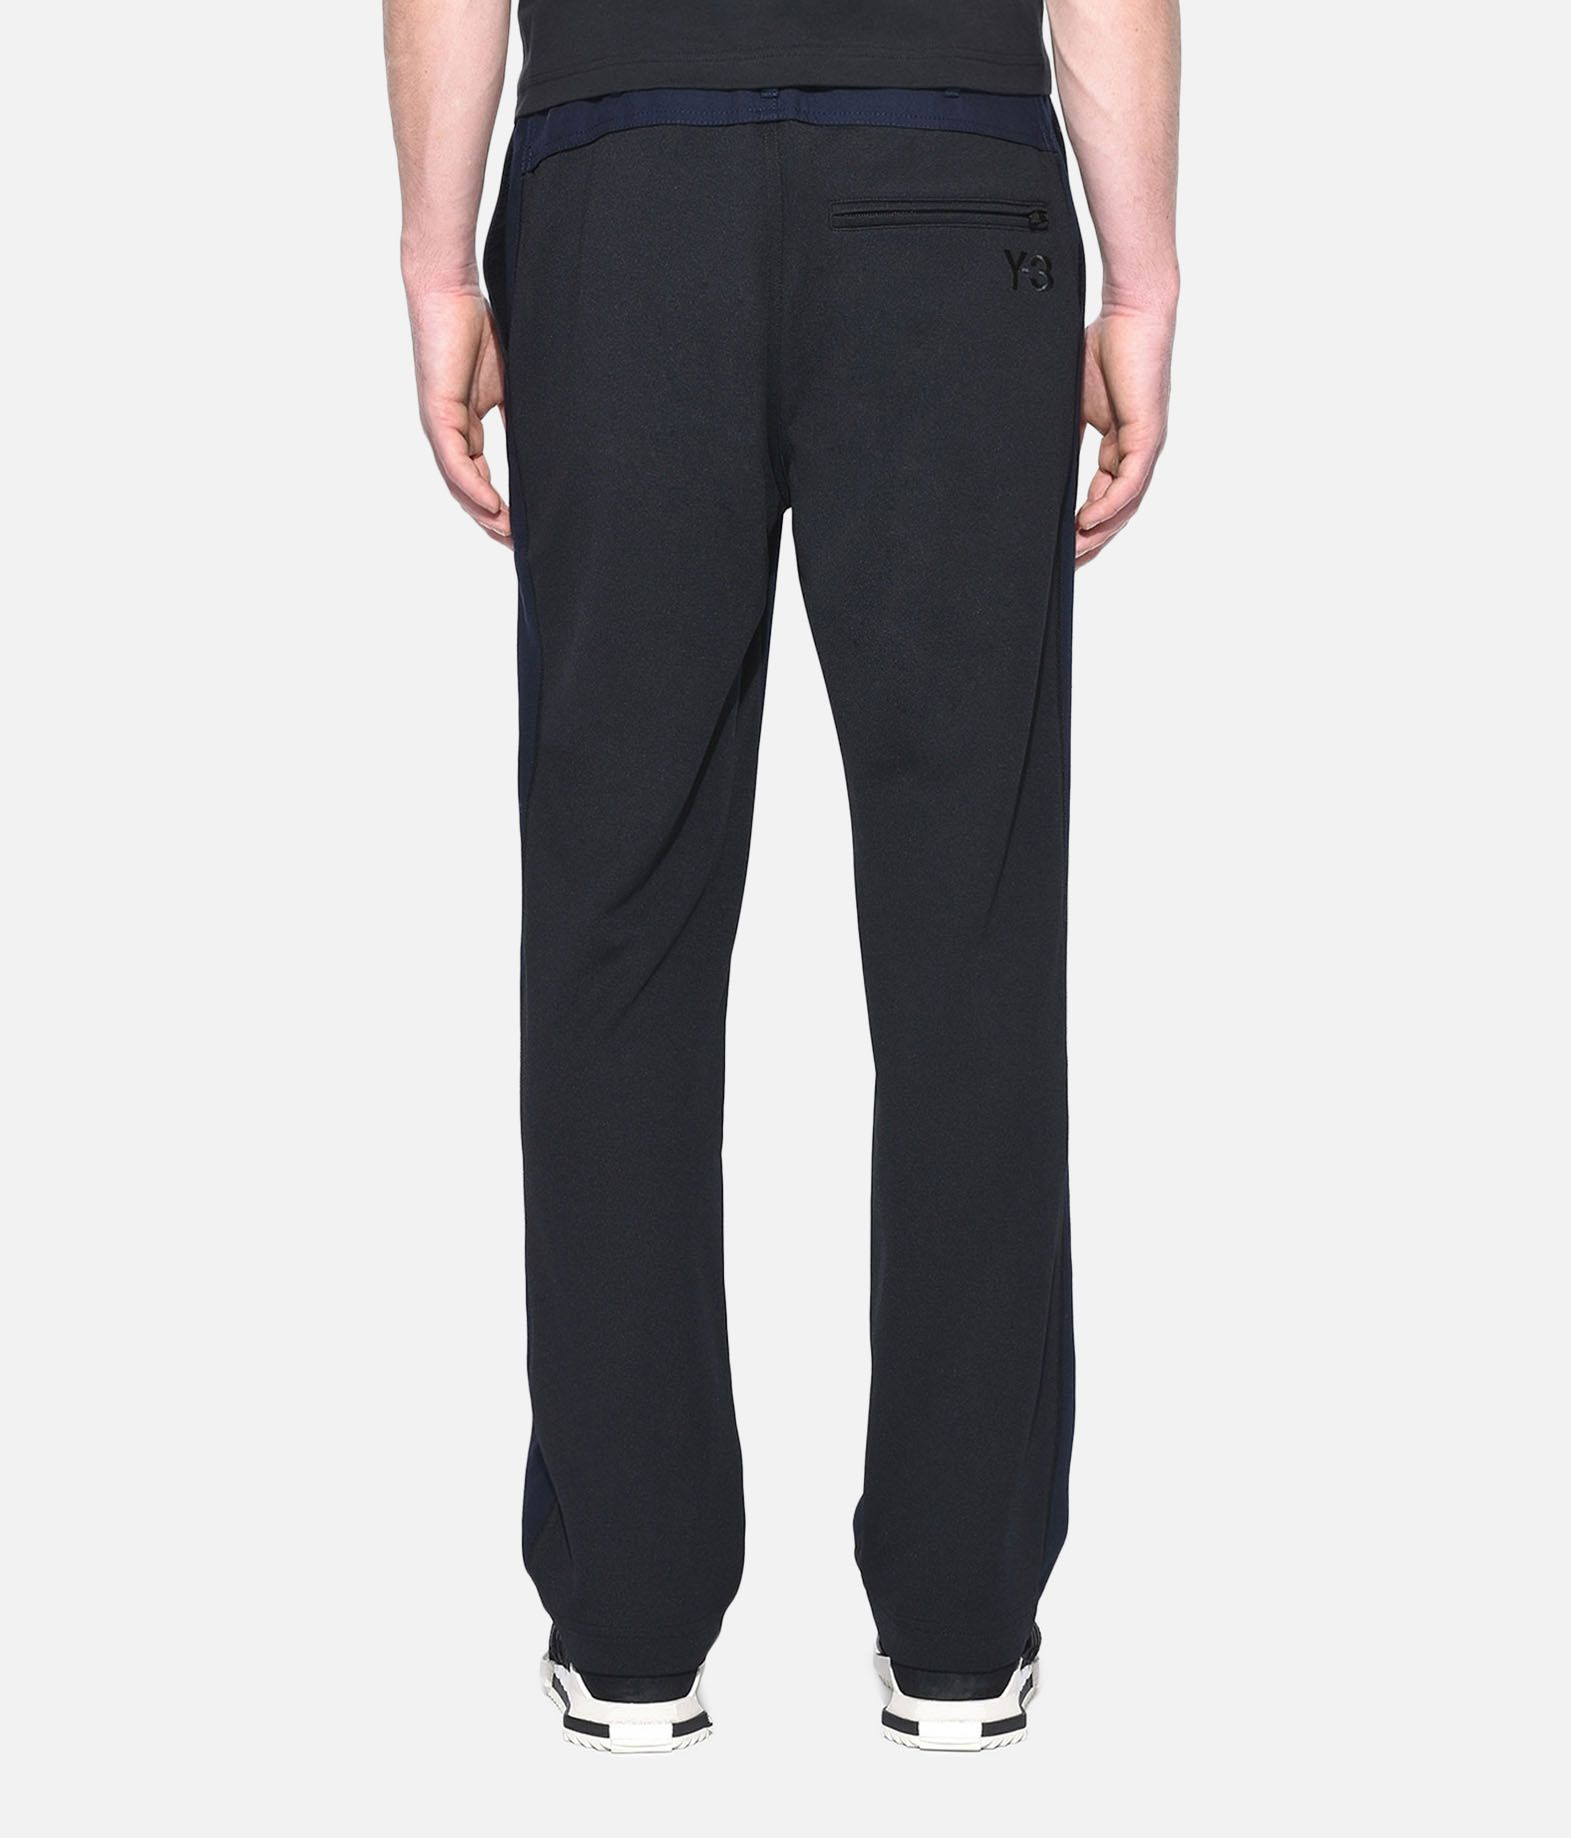 Y-3 Y-3 Dress Pants Casual pants Man d